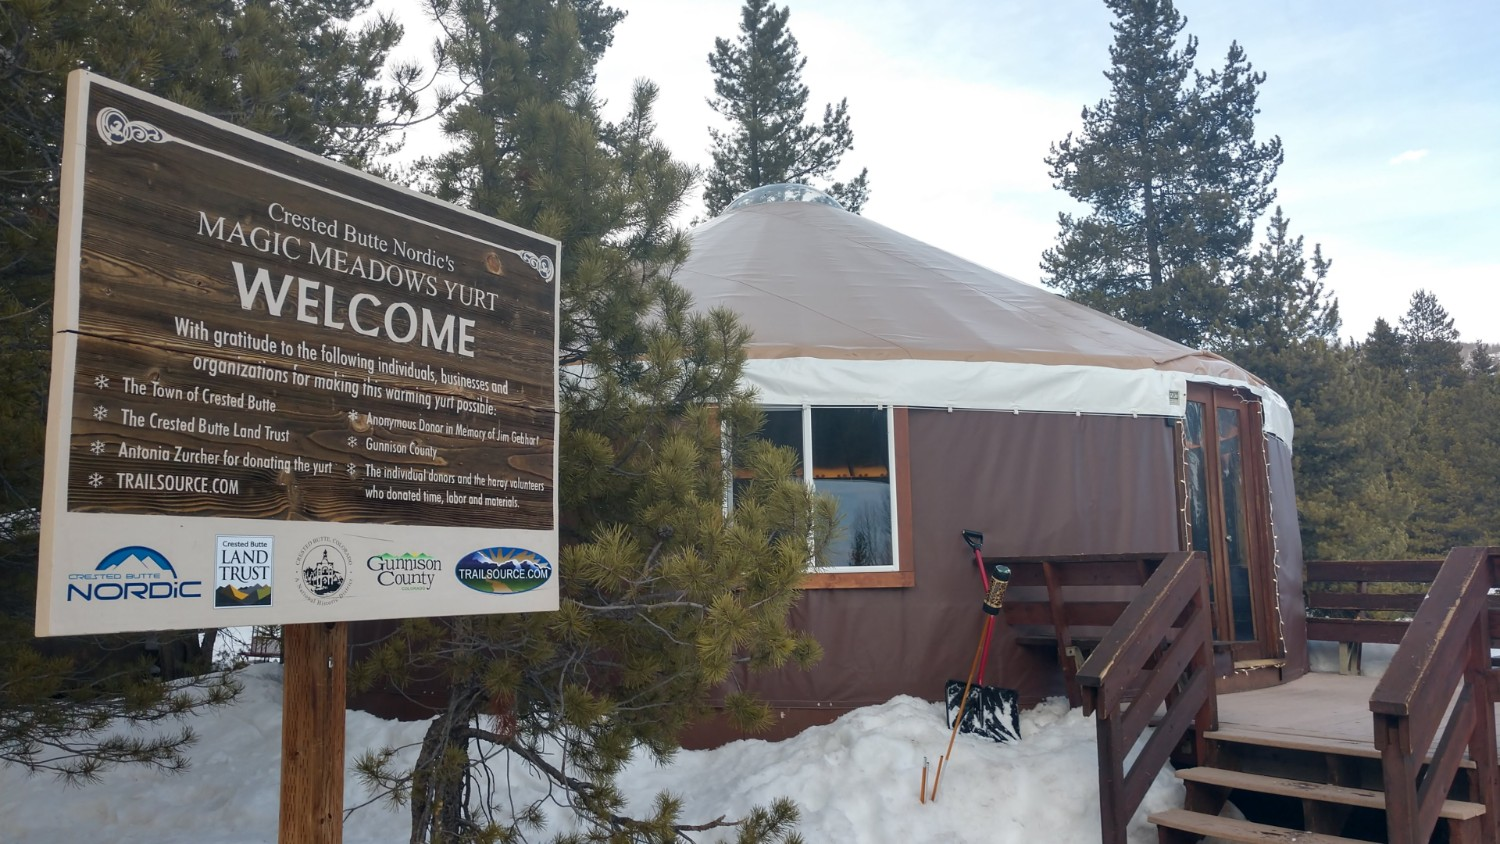 Magic Meadows Yurt, Crested Butte, CO